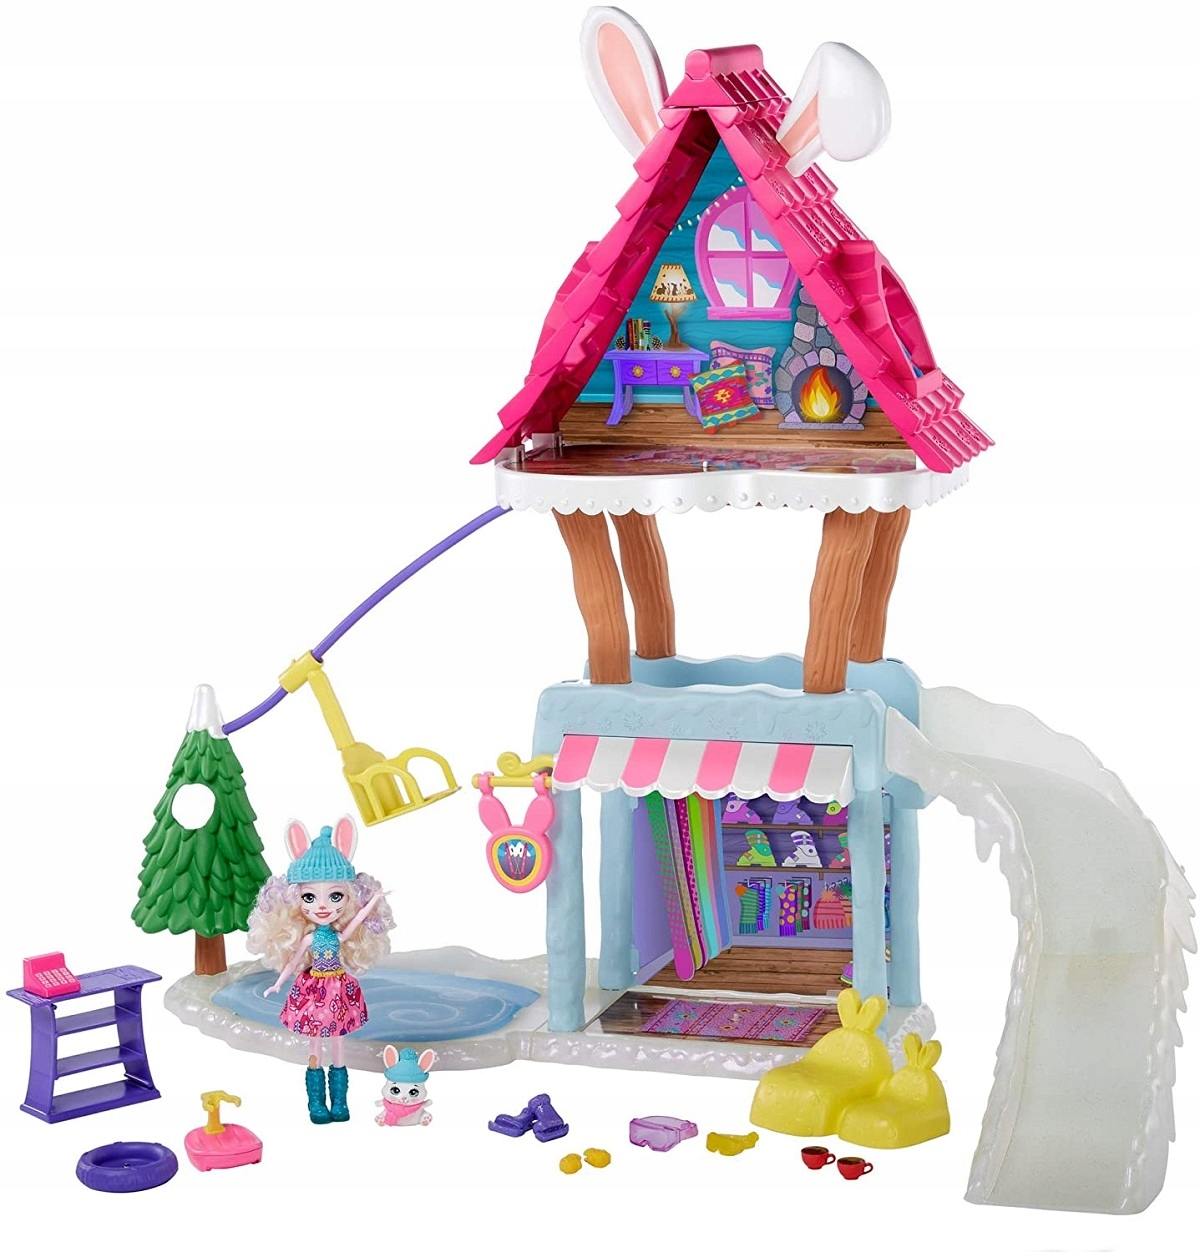 ENCHANTIMALS WINTER HOUSE HOUSE - RABBIT - GJX50